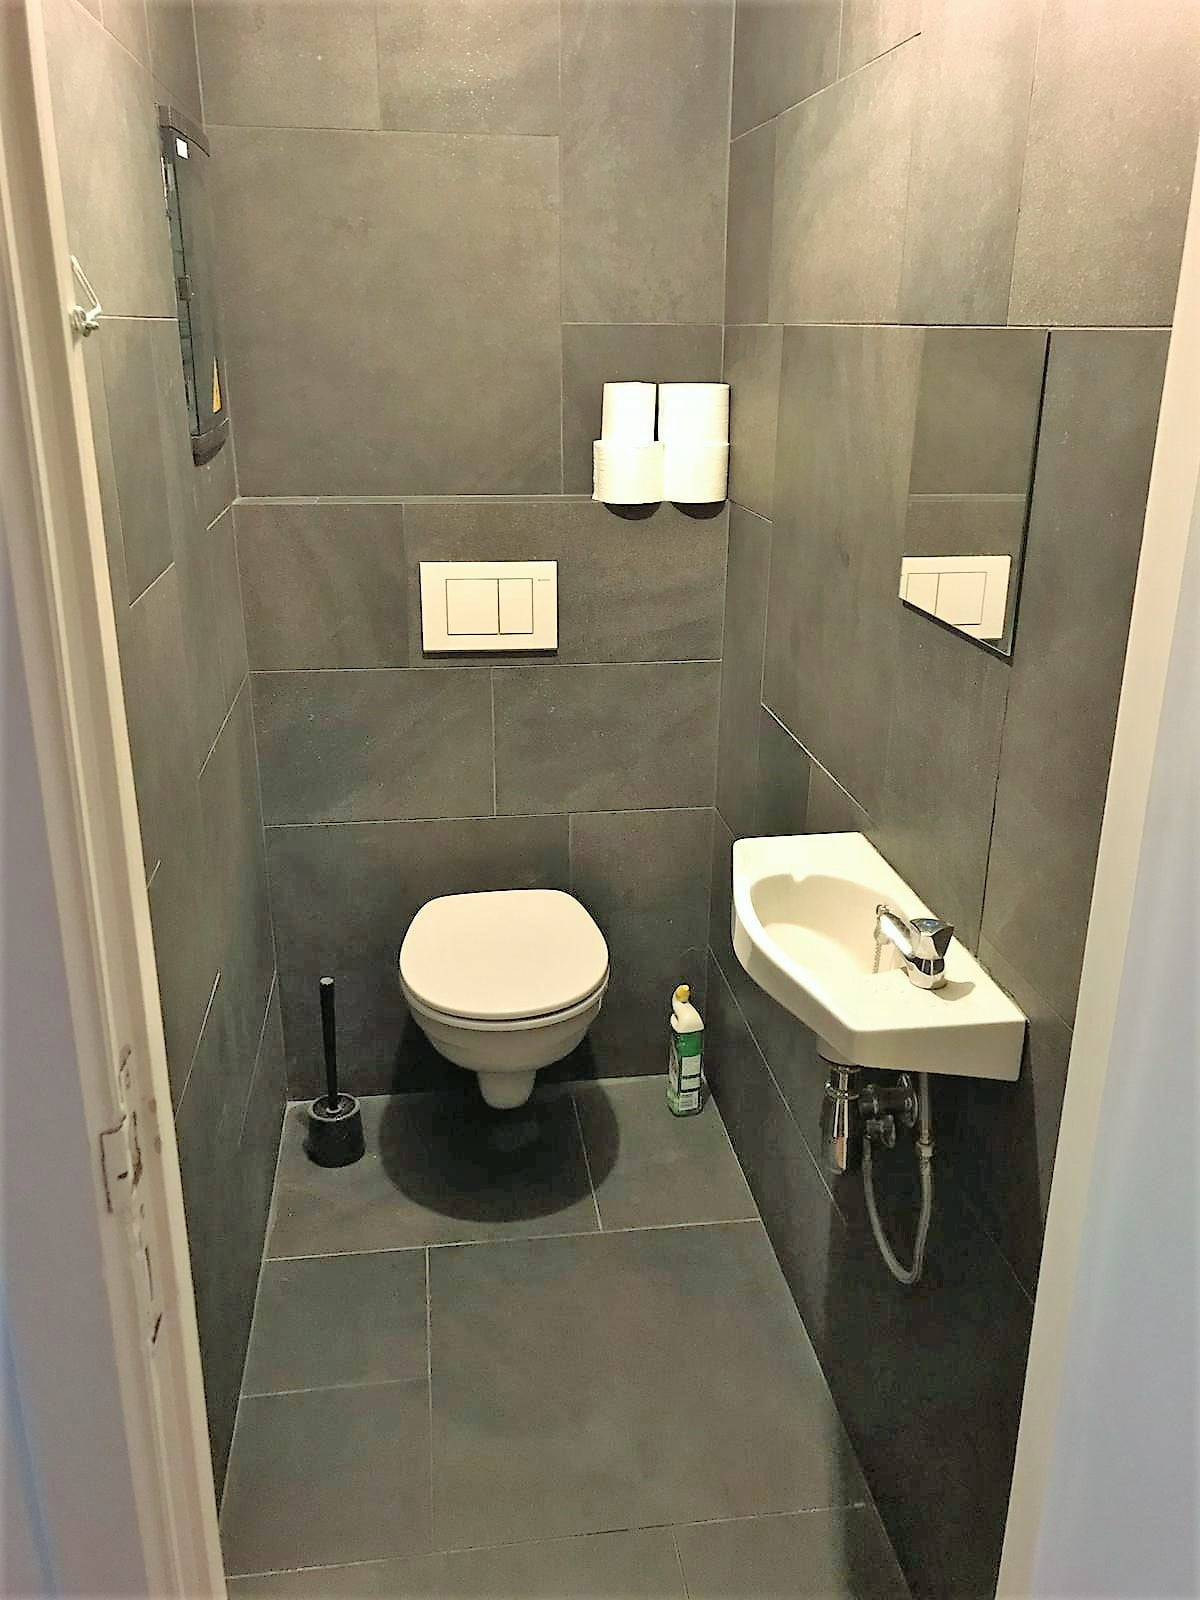 Toilet building workers accommodation antwerp port area by Globexs (15)